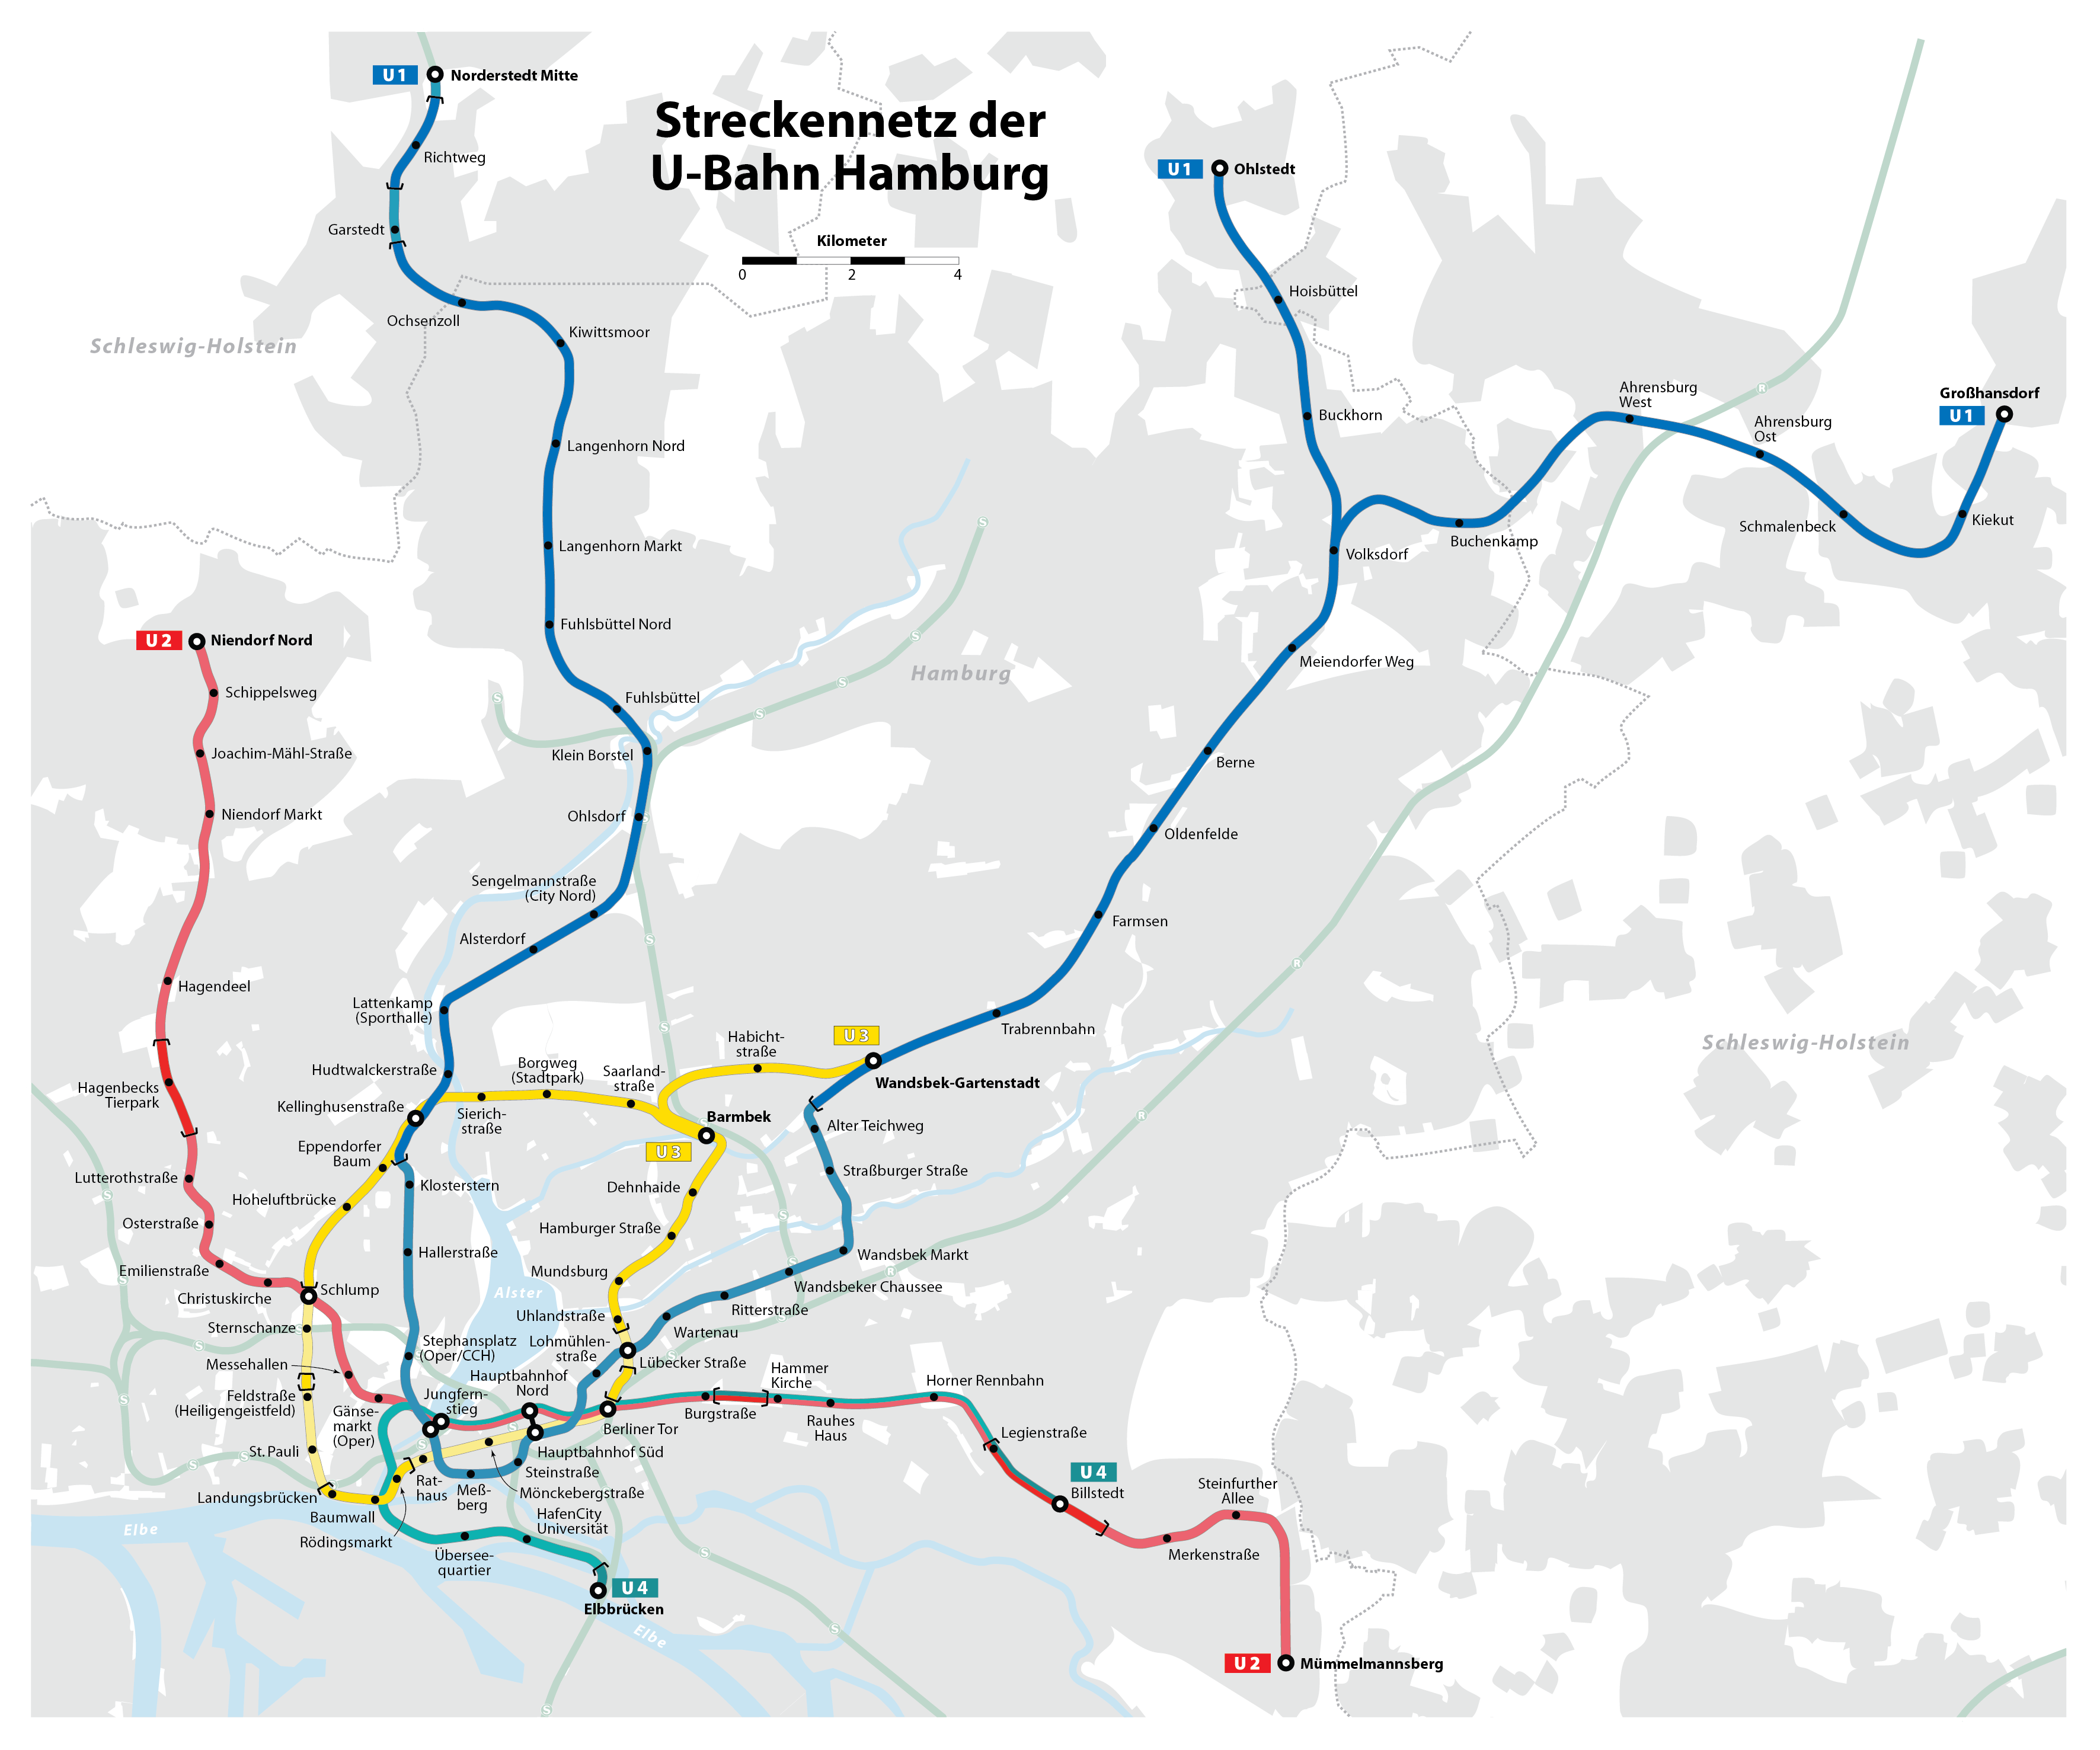 u Bahn Wien Map Pdf Hamburg U-bahn Network With